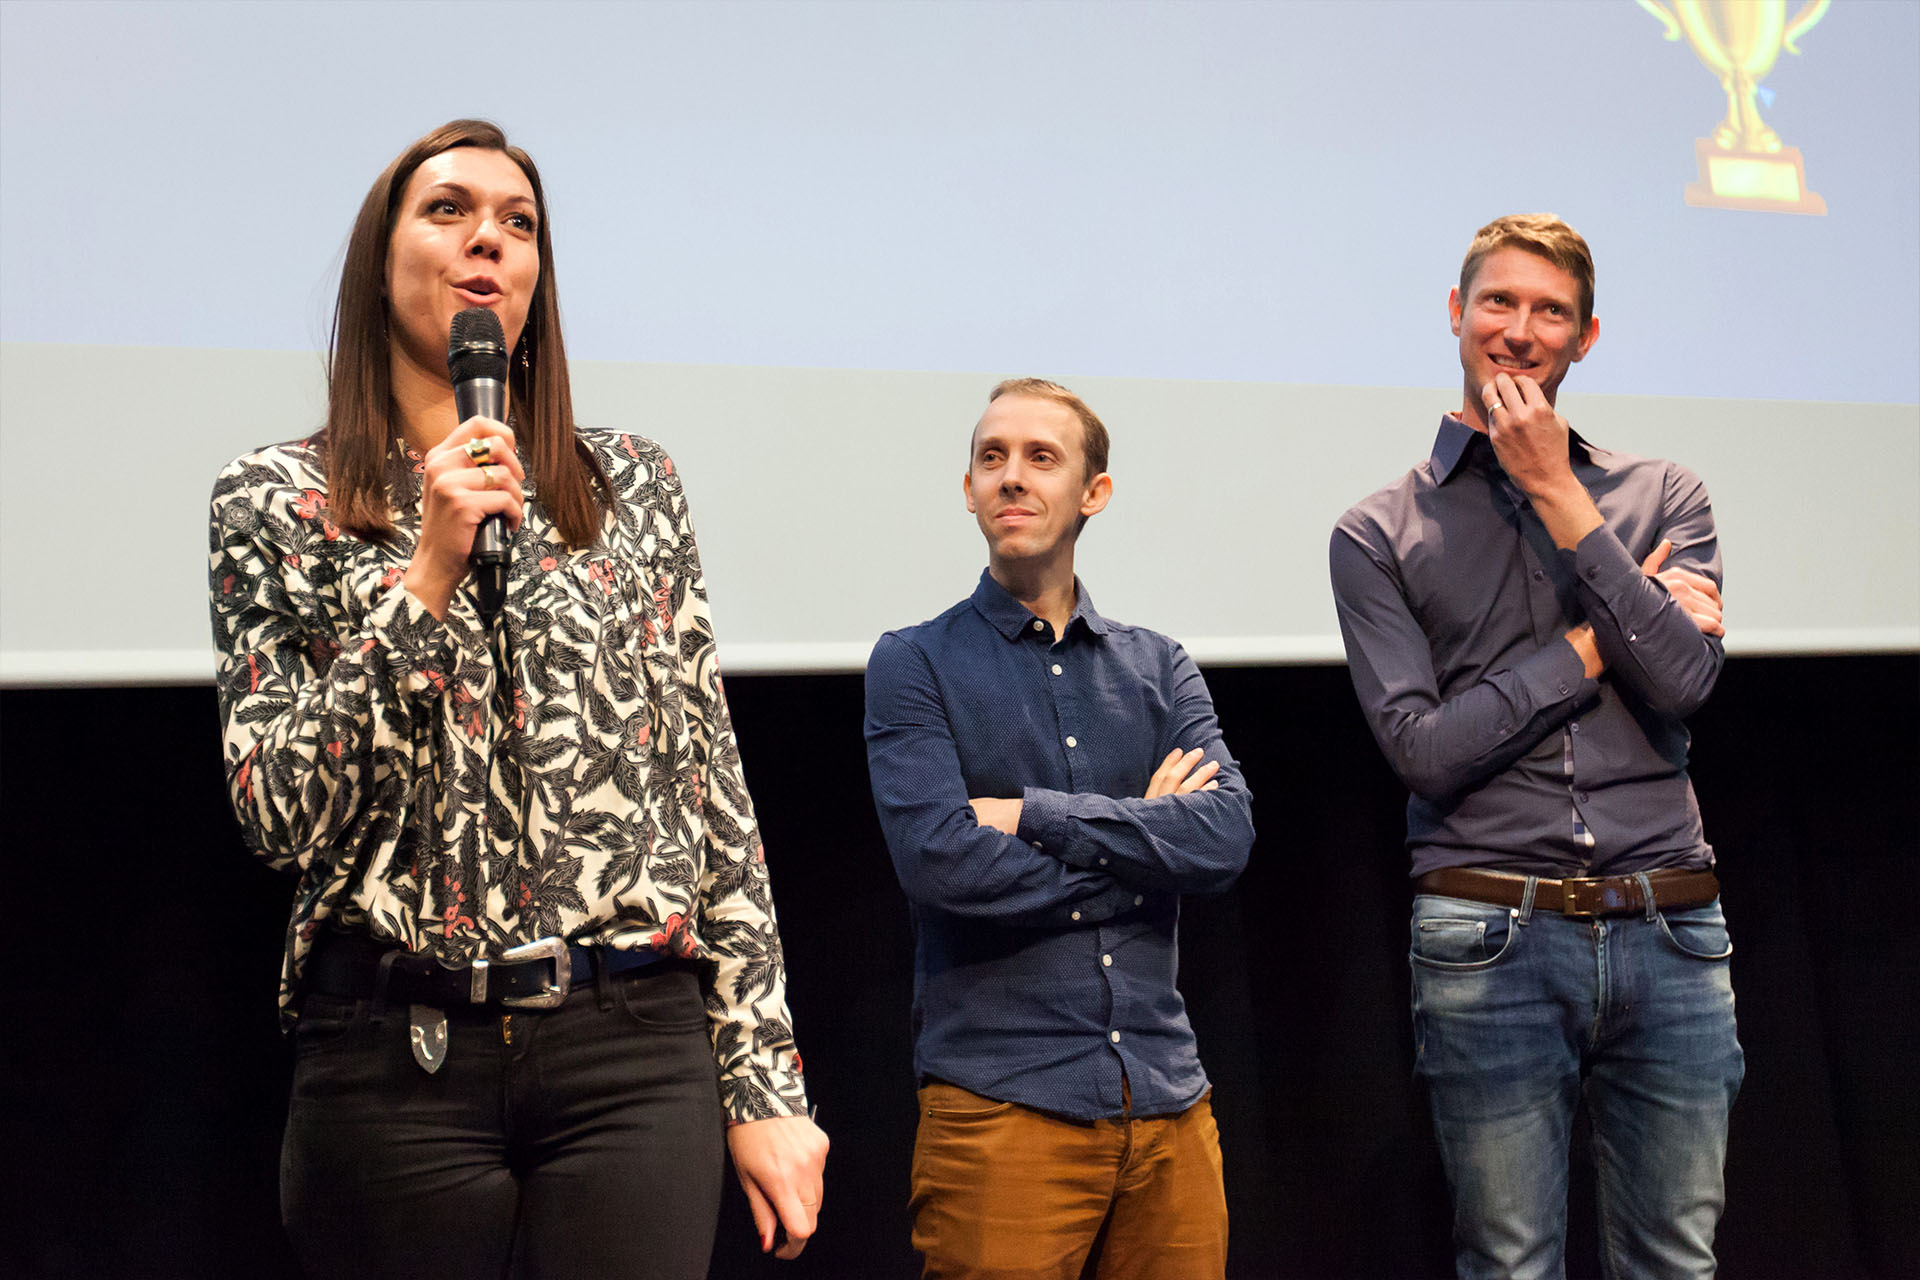 Jury. From left to right: Mélissa Bourgeois, Guillaume Coudriau, Thomas Longuemart